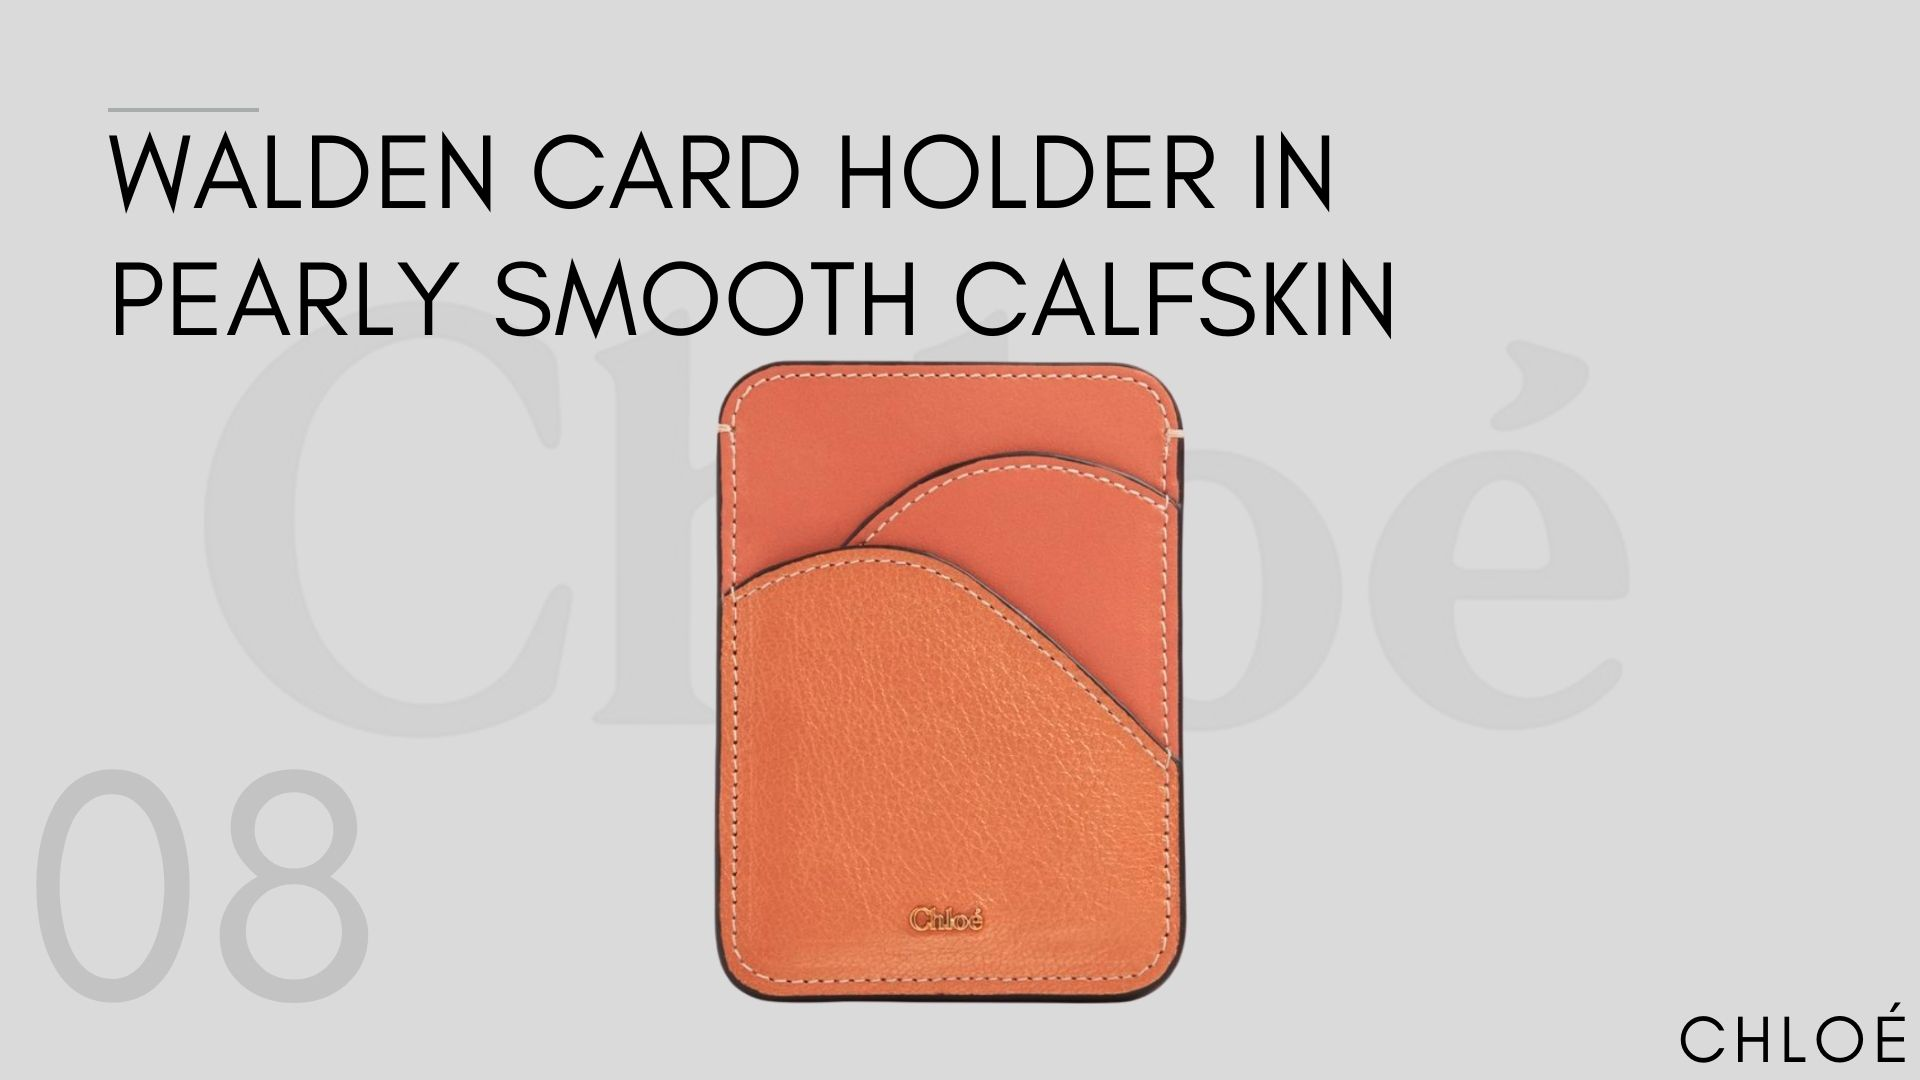 Walden Card Holder In Pearly Smooth Calfskin